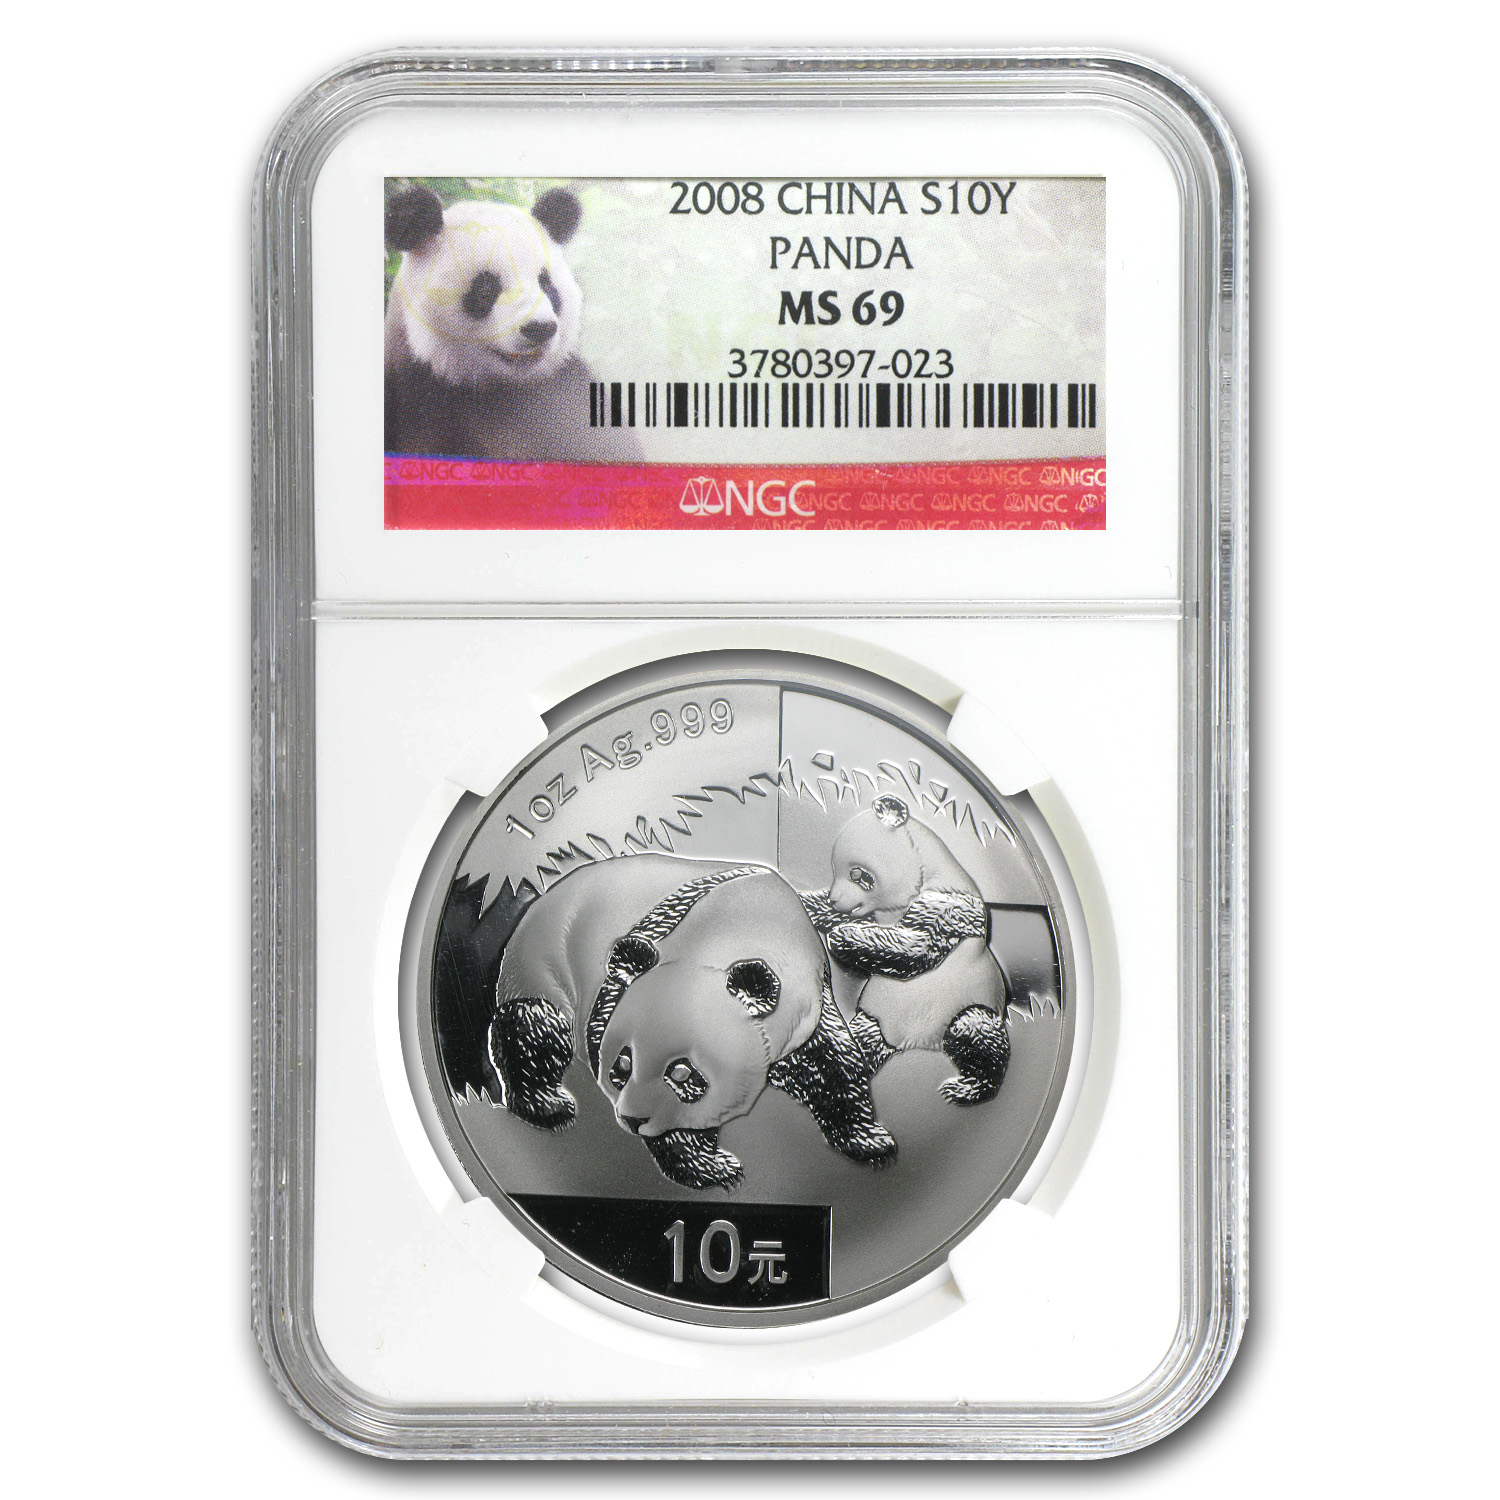 2008 1 oz Silver Chinese Panda - MS-69 NGC